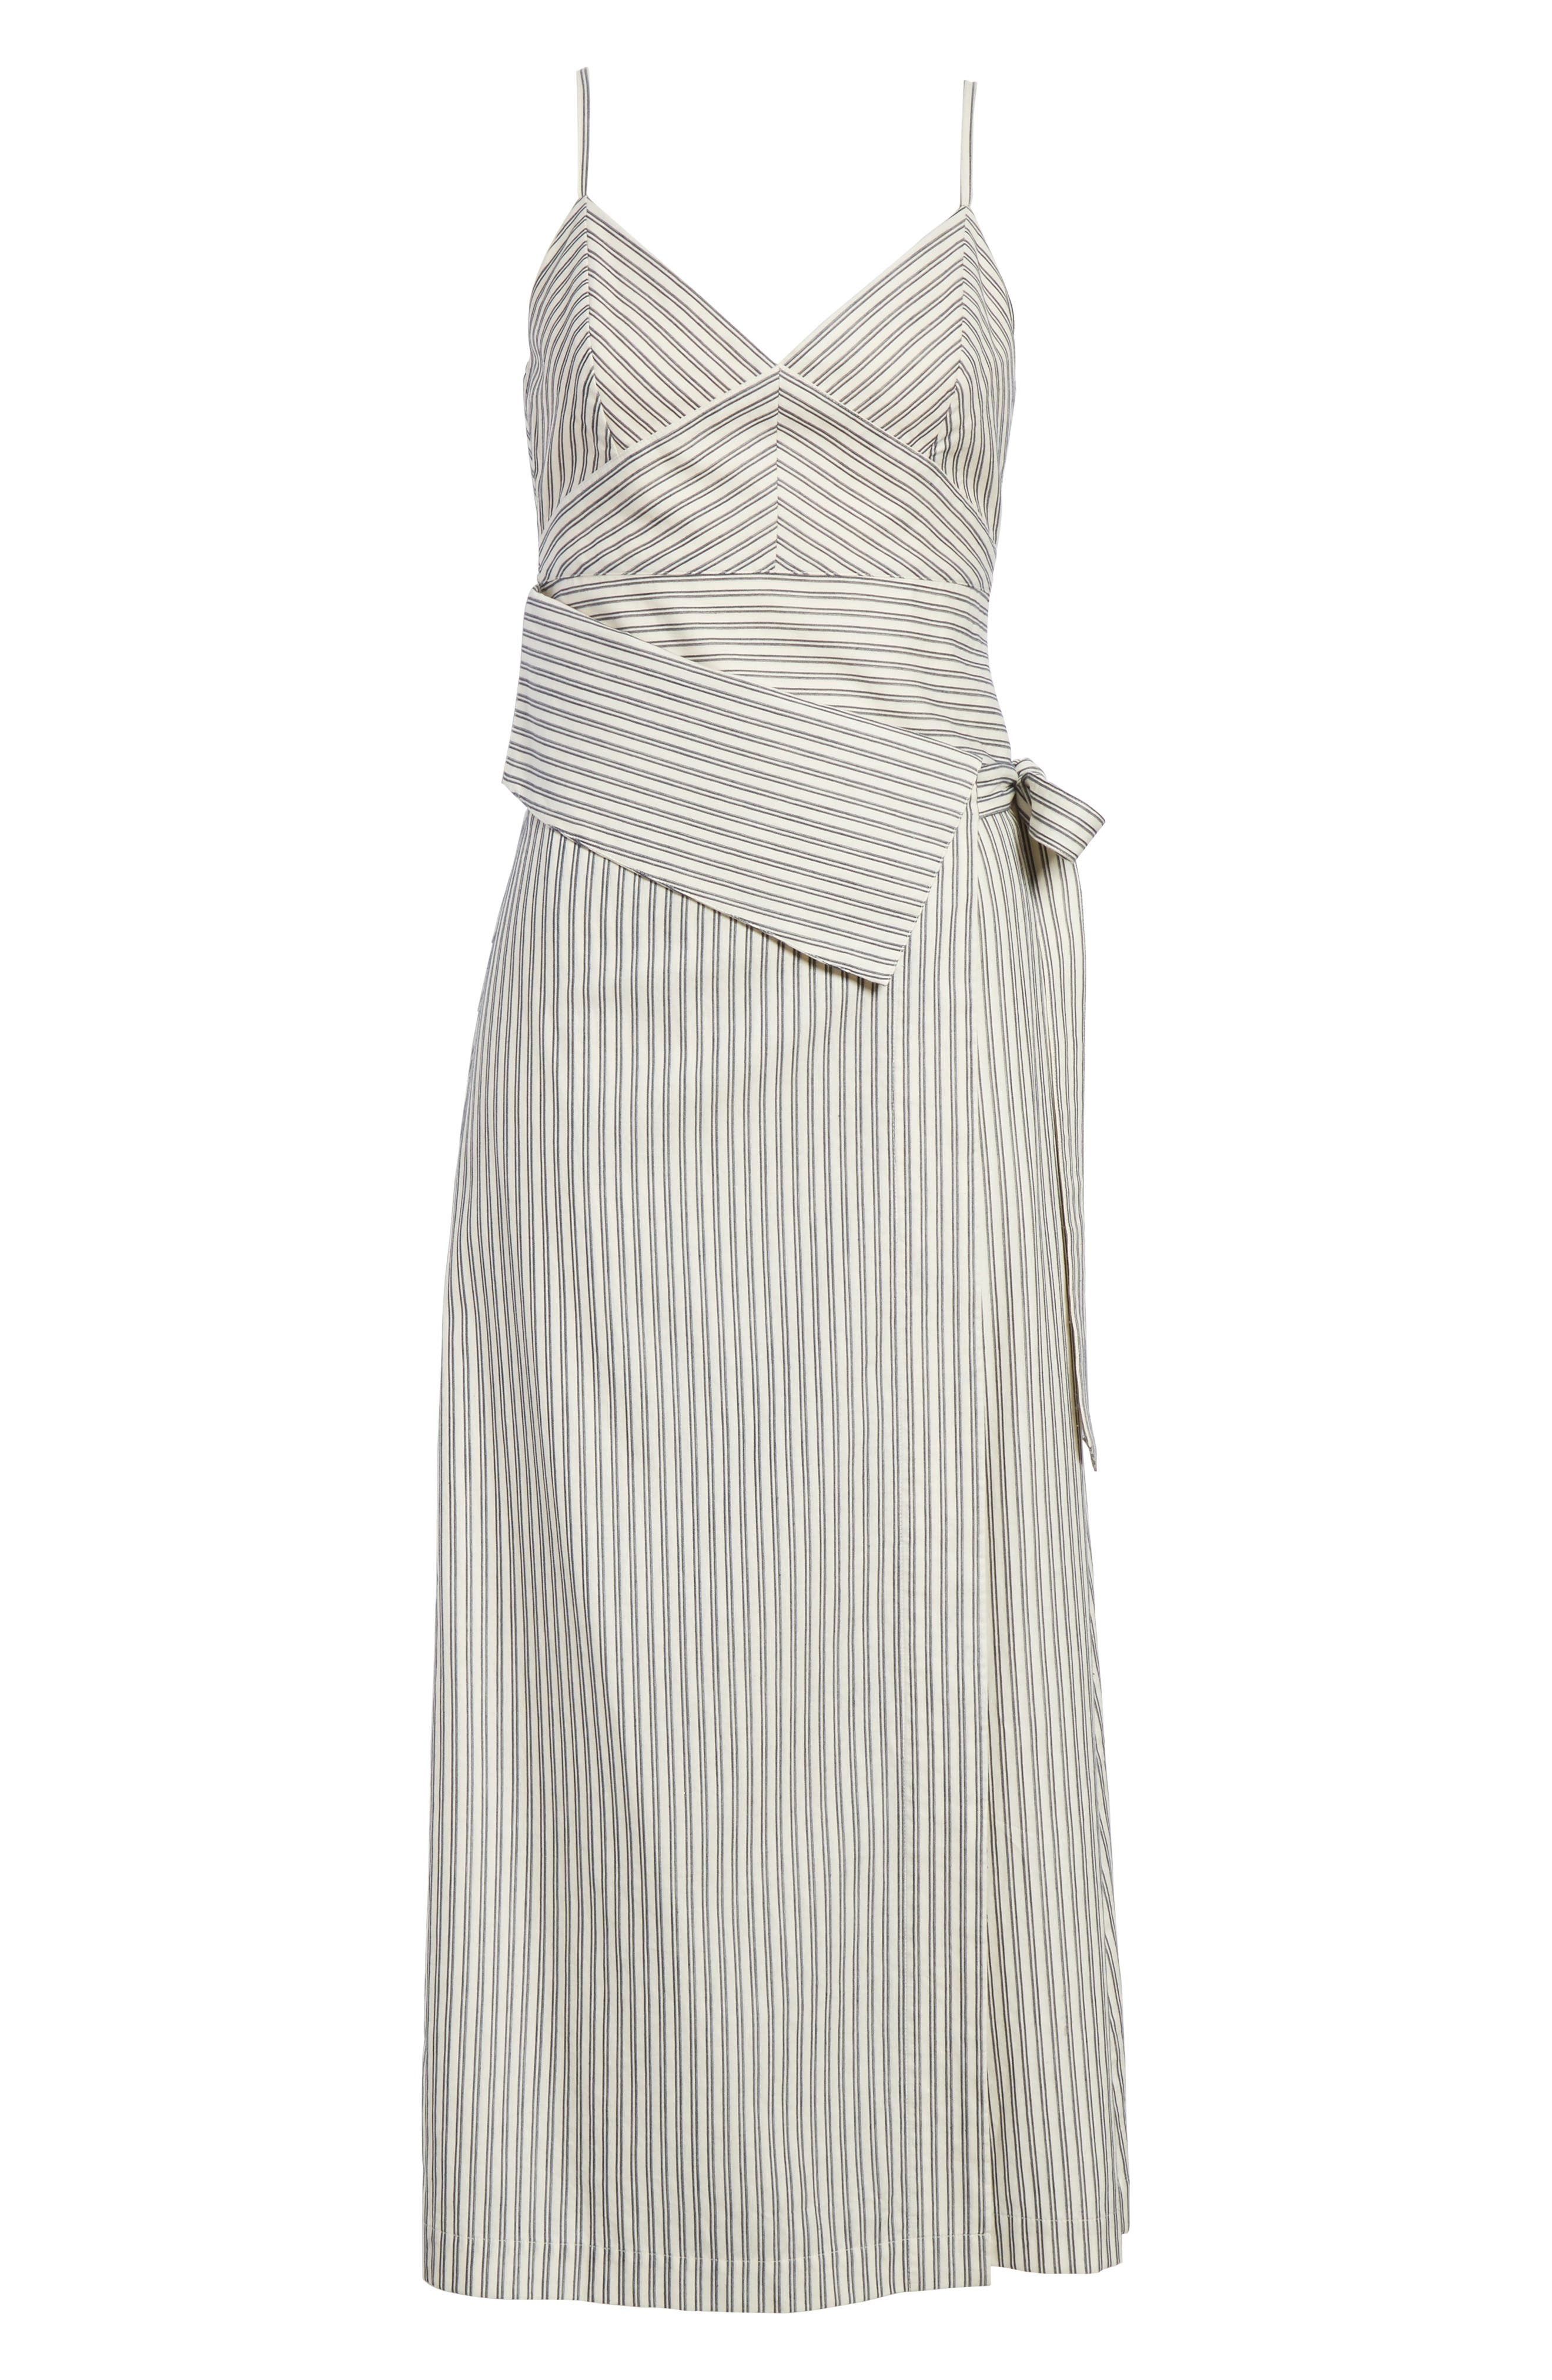 Stripe Wrap Front Midi Dress,                             Alternate thumbnail 8, color,                             Blue/ Ivory Stripe